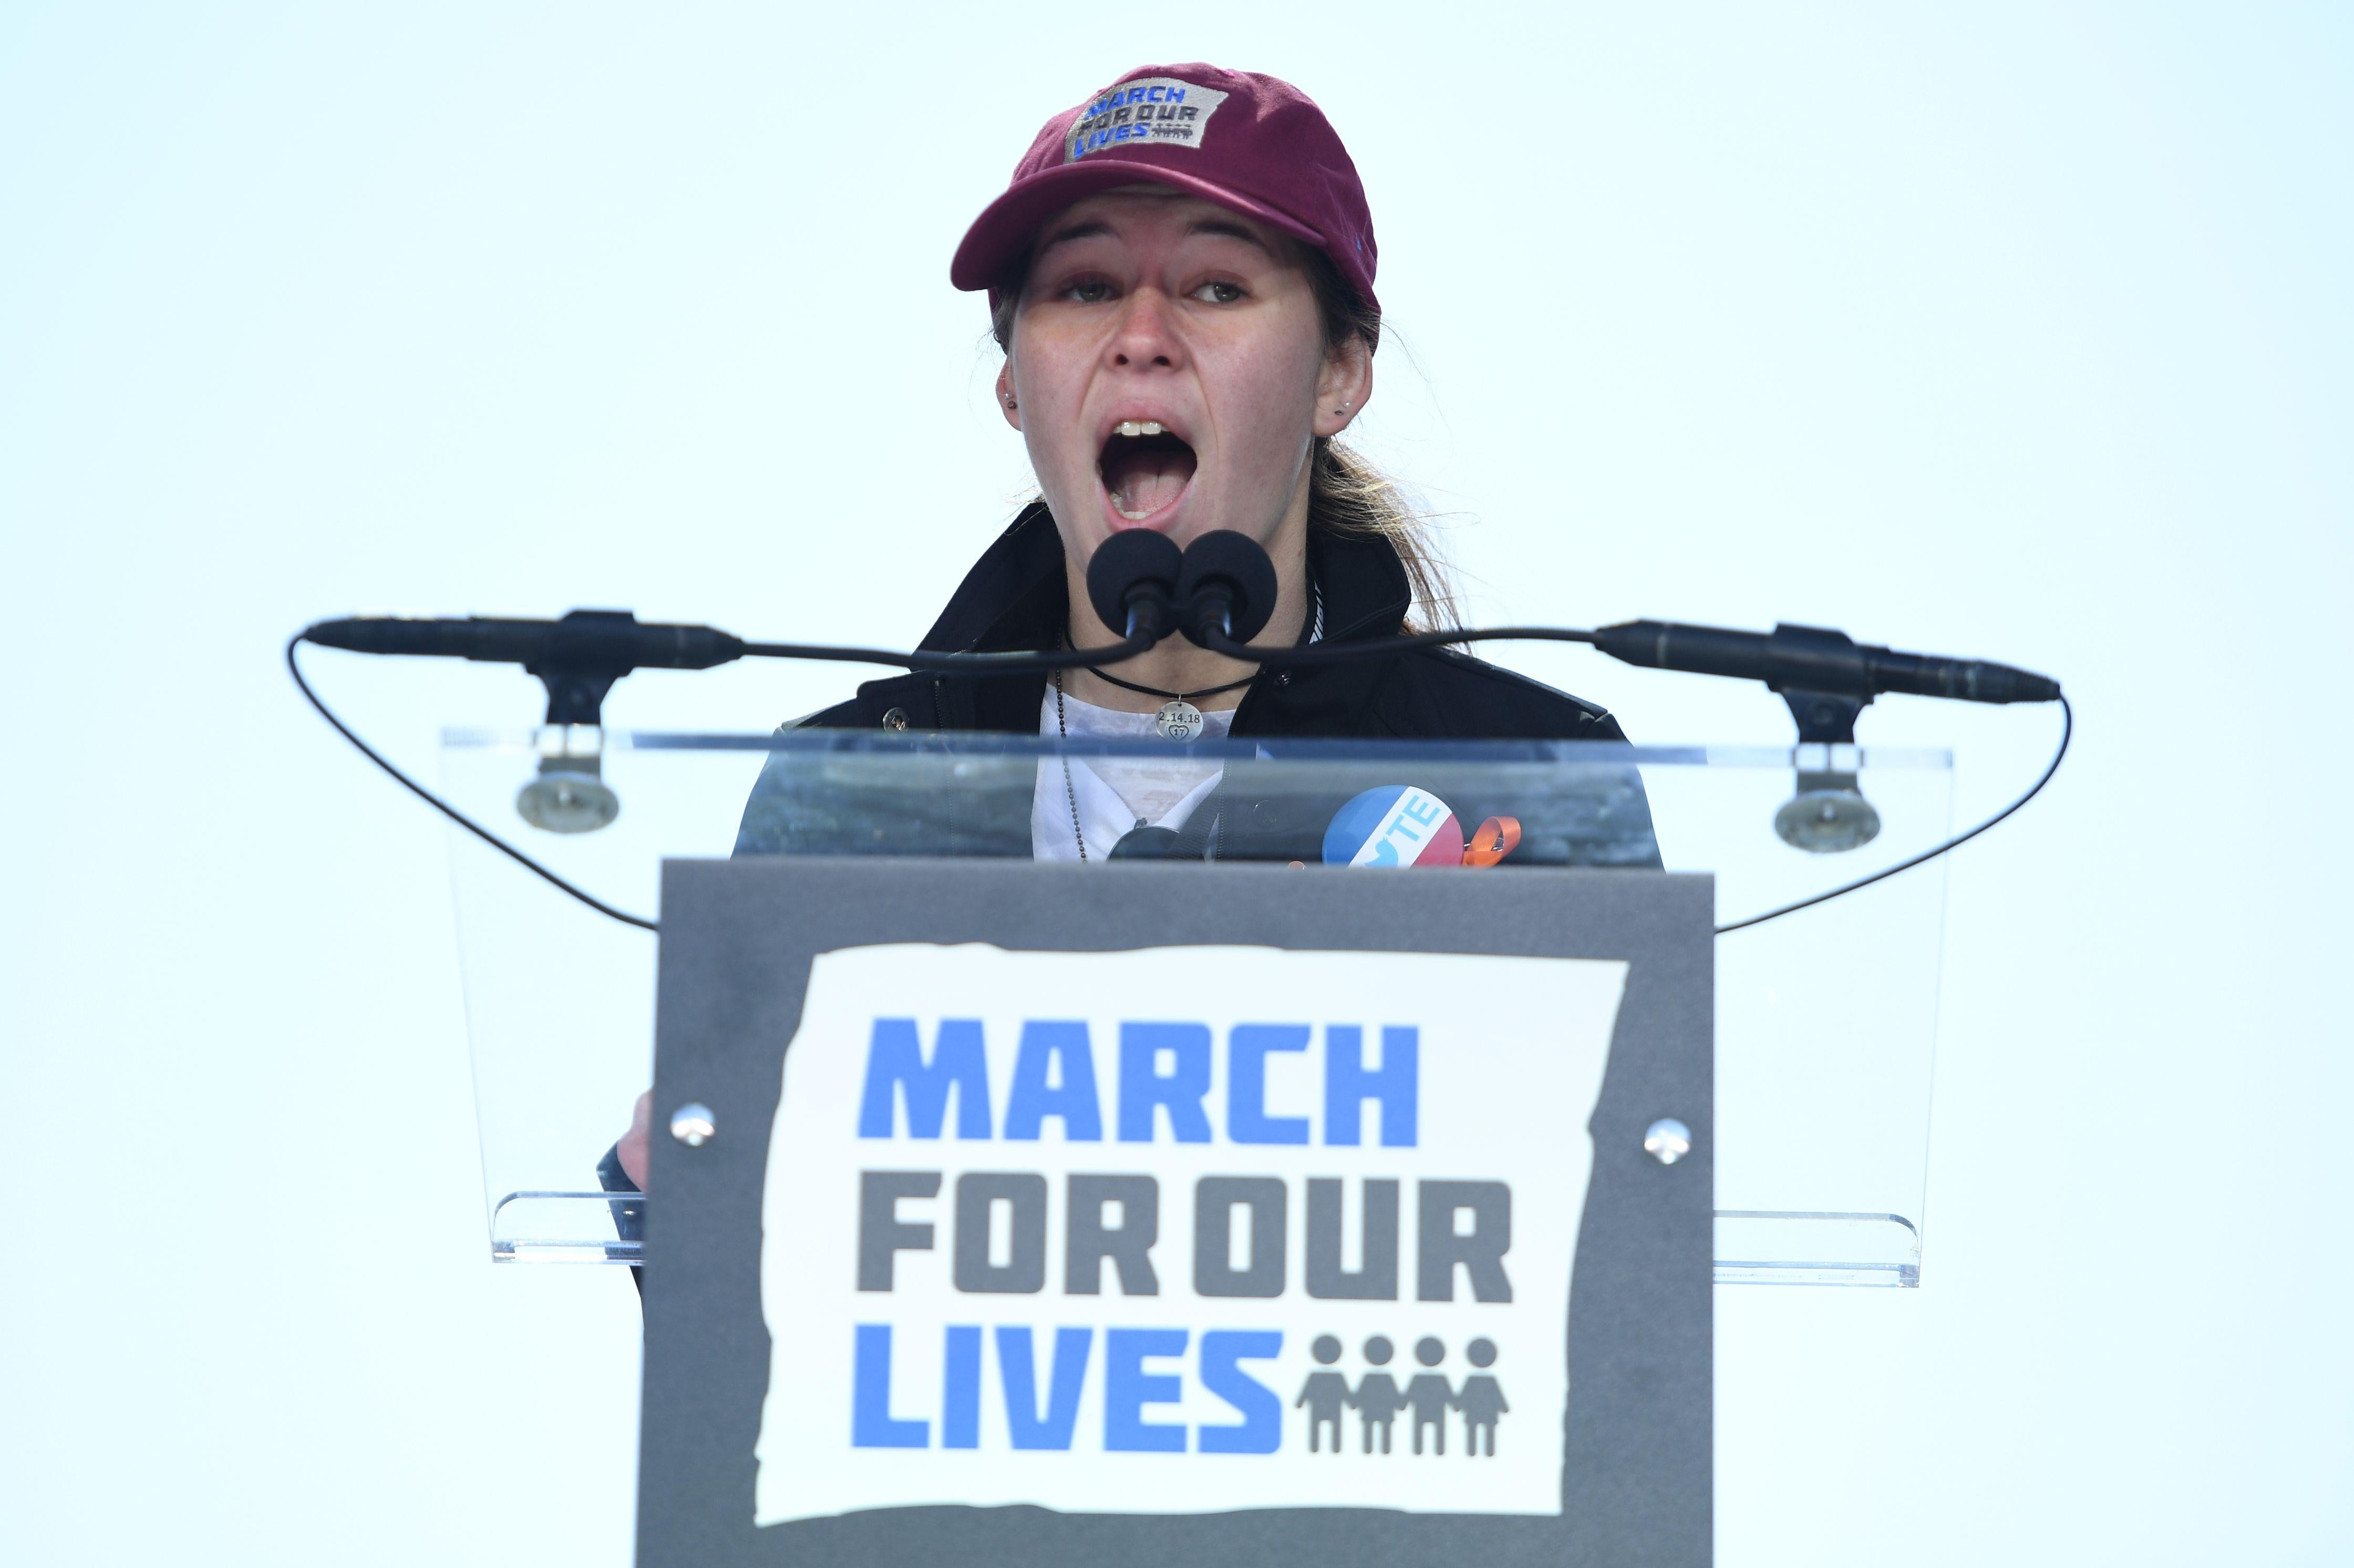 Marjory Stoneman Douglas High School student Sarah Chadwick speaks at the March for Our Lives rally in Washington, D.C. on March 24, 2018.